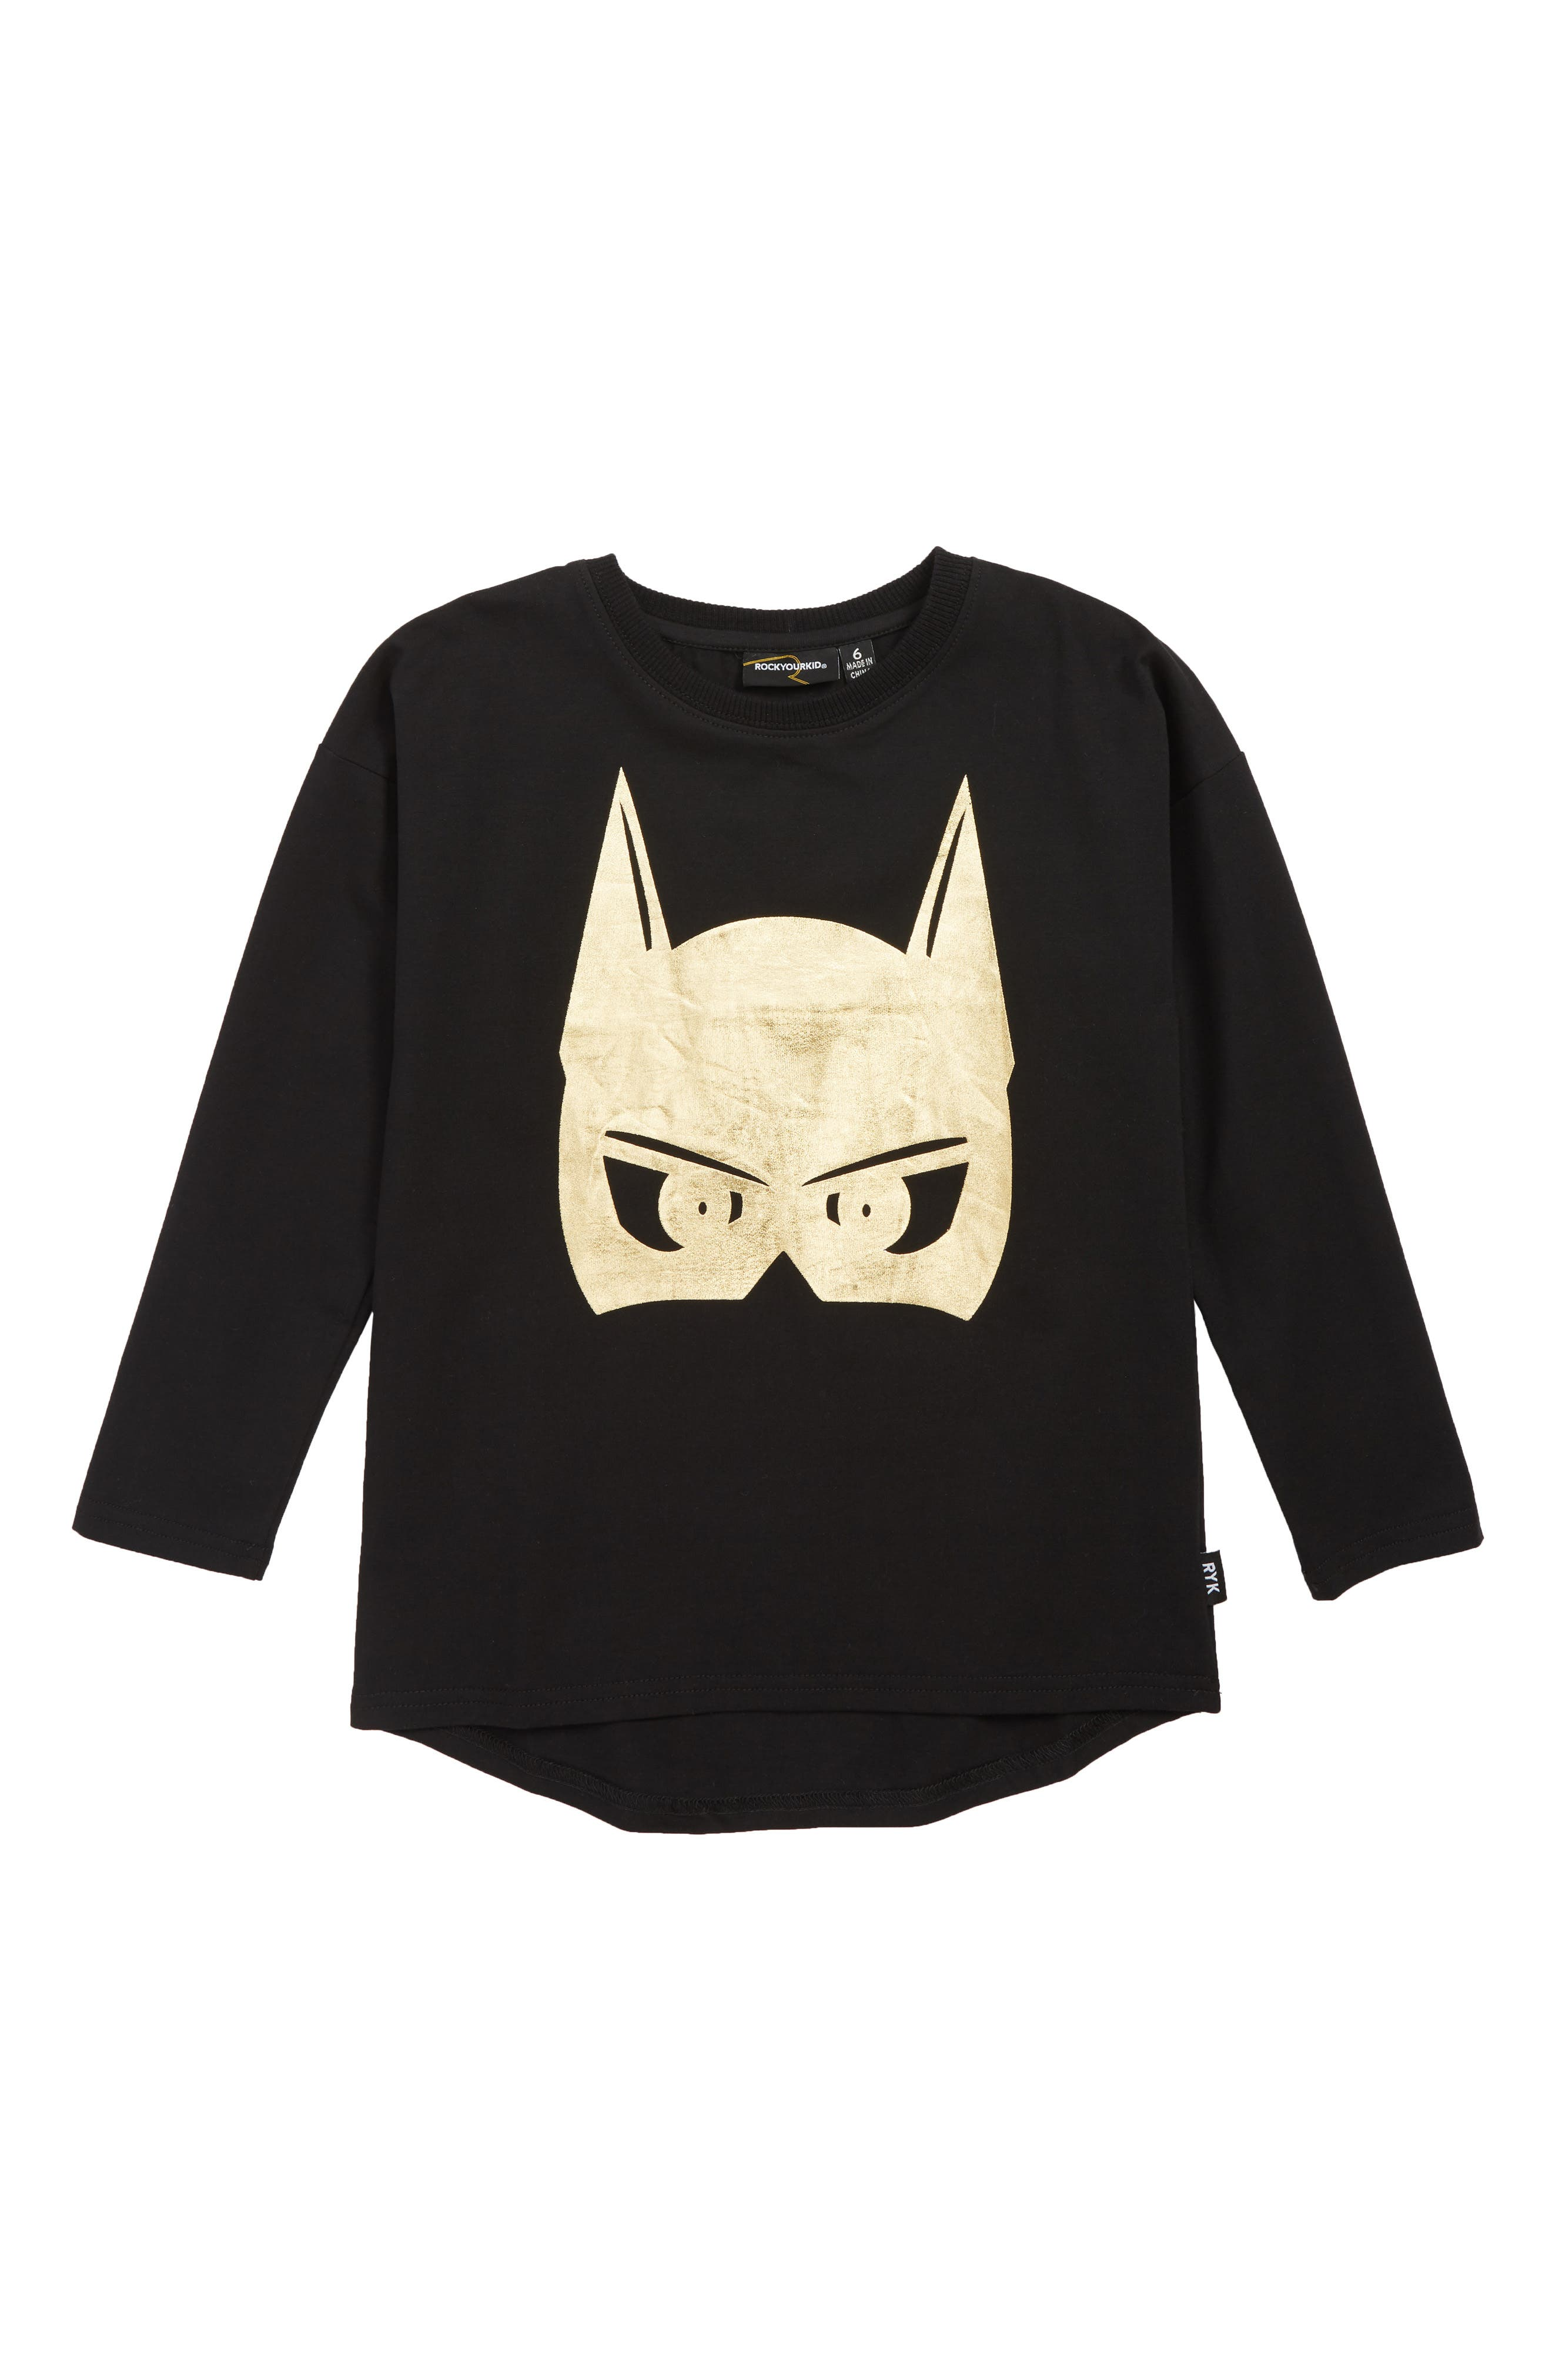 Rock Your Kid Caped Crusader T-Shirt,                         Main,                         color, BLACK